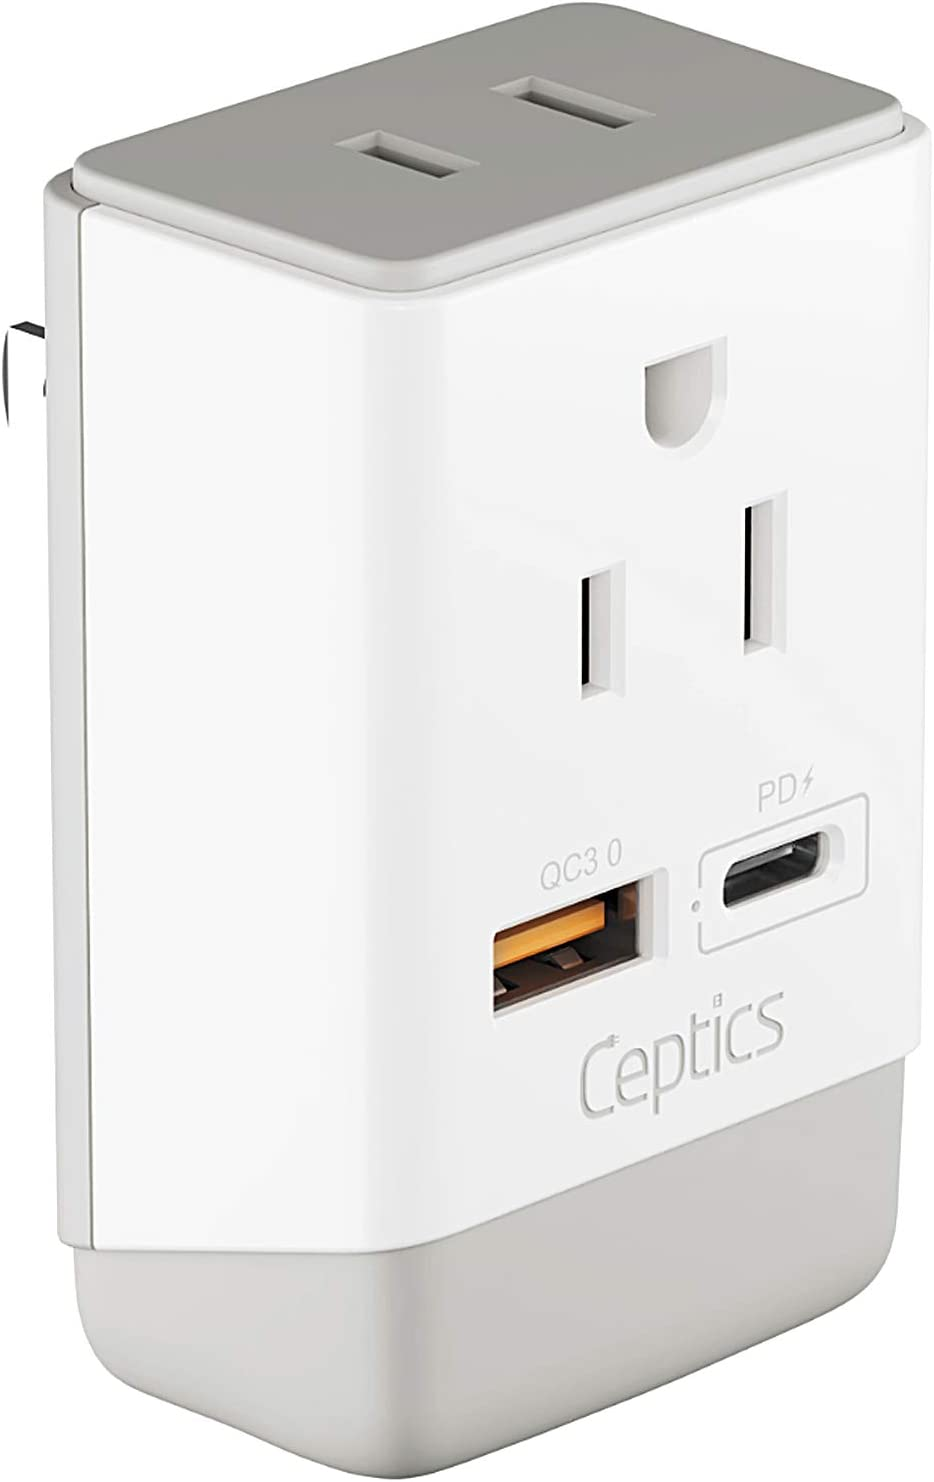 Japan, Philippines Power Plug Adapter Travel QC 3.0 & PD by Ceptics, Safe Dual USB & USB-C - 2 USA Socket Compact & Powerful - USA 3 Pin Polarized to 2 Prong Unpolarized - Type A - AP-6 Fast Charging